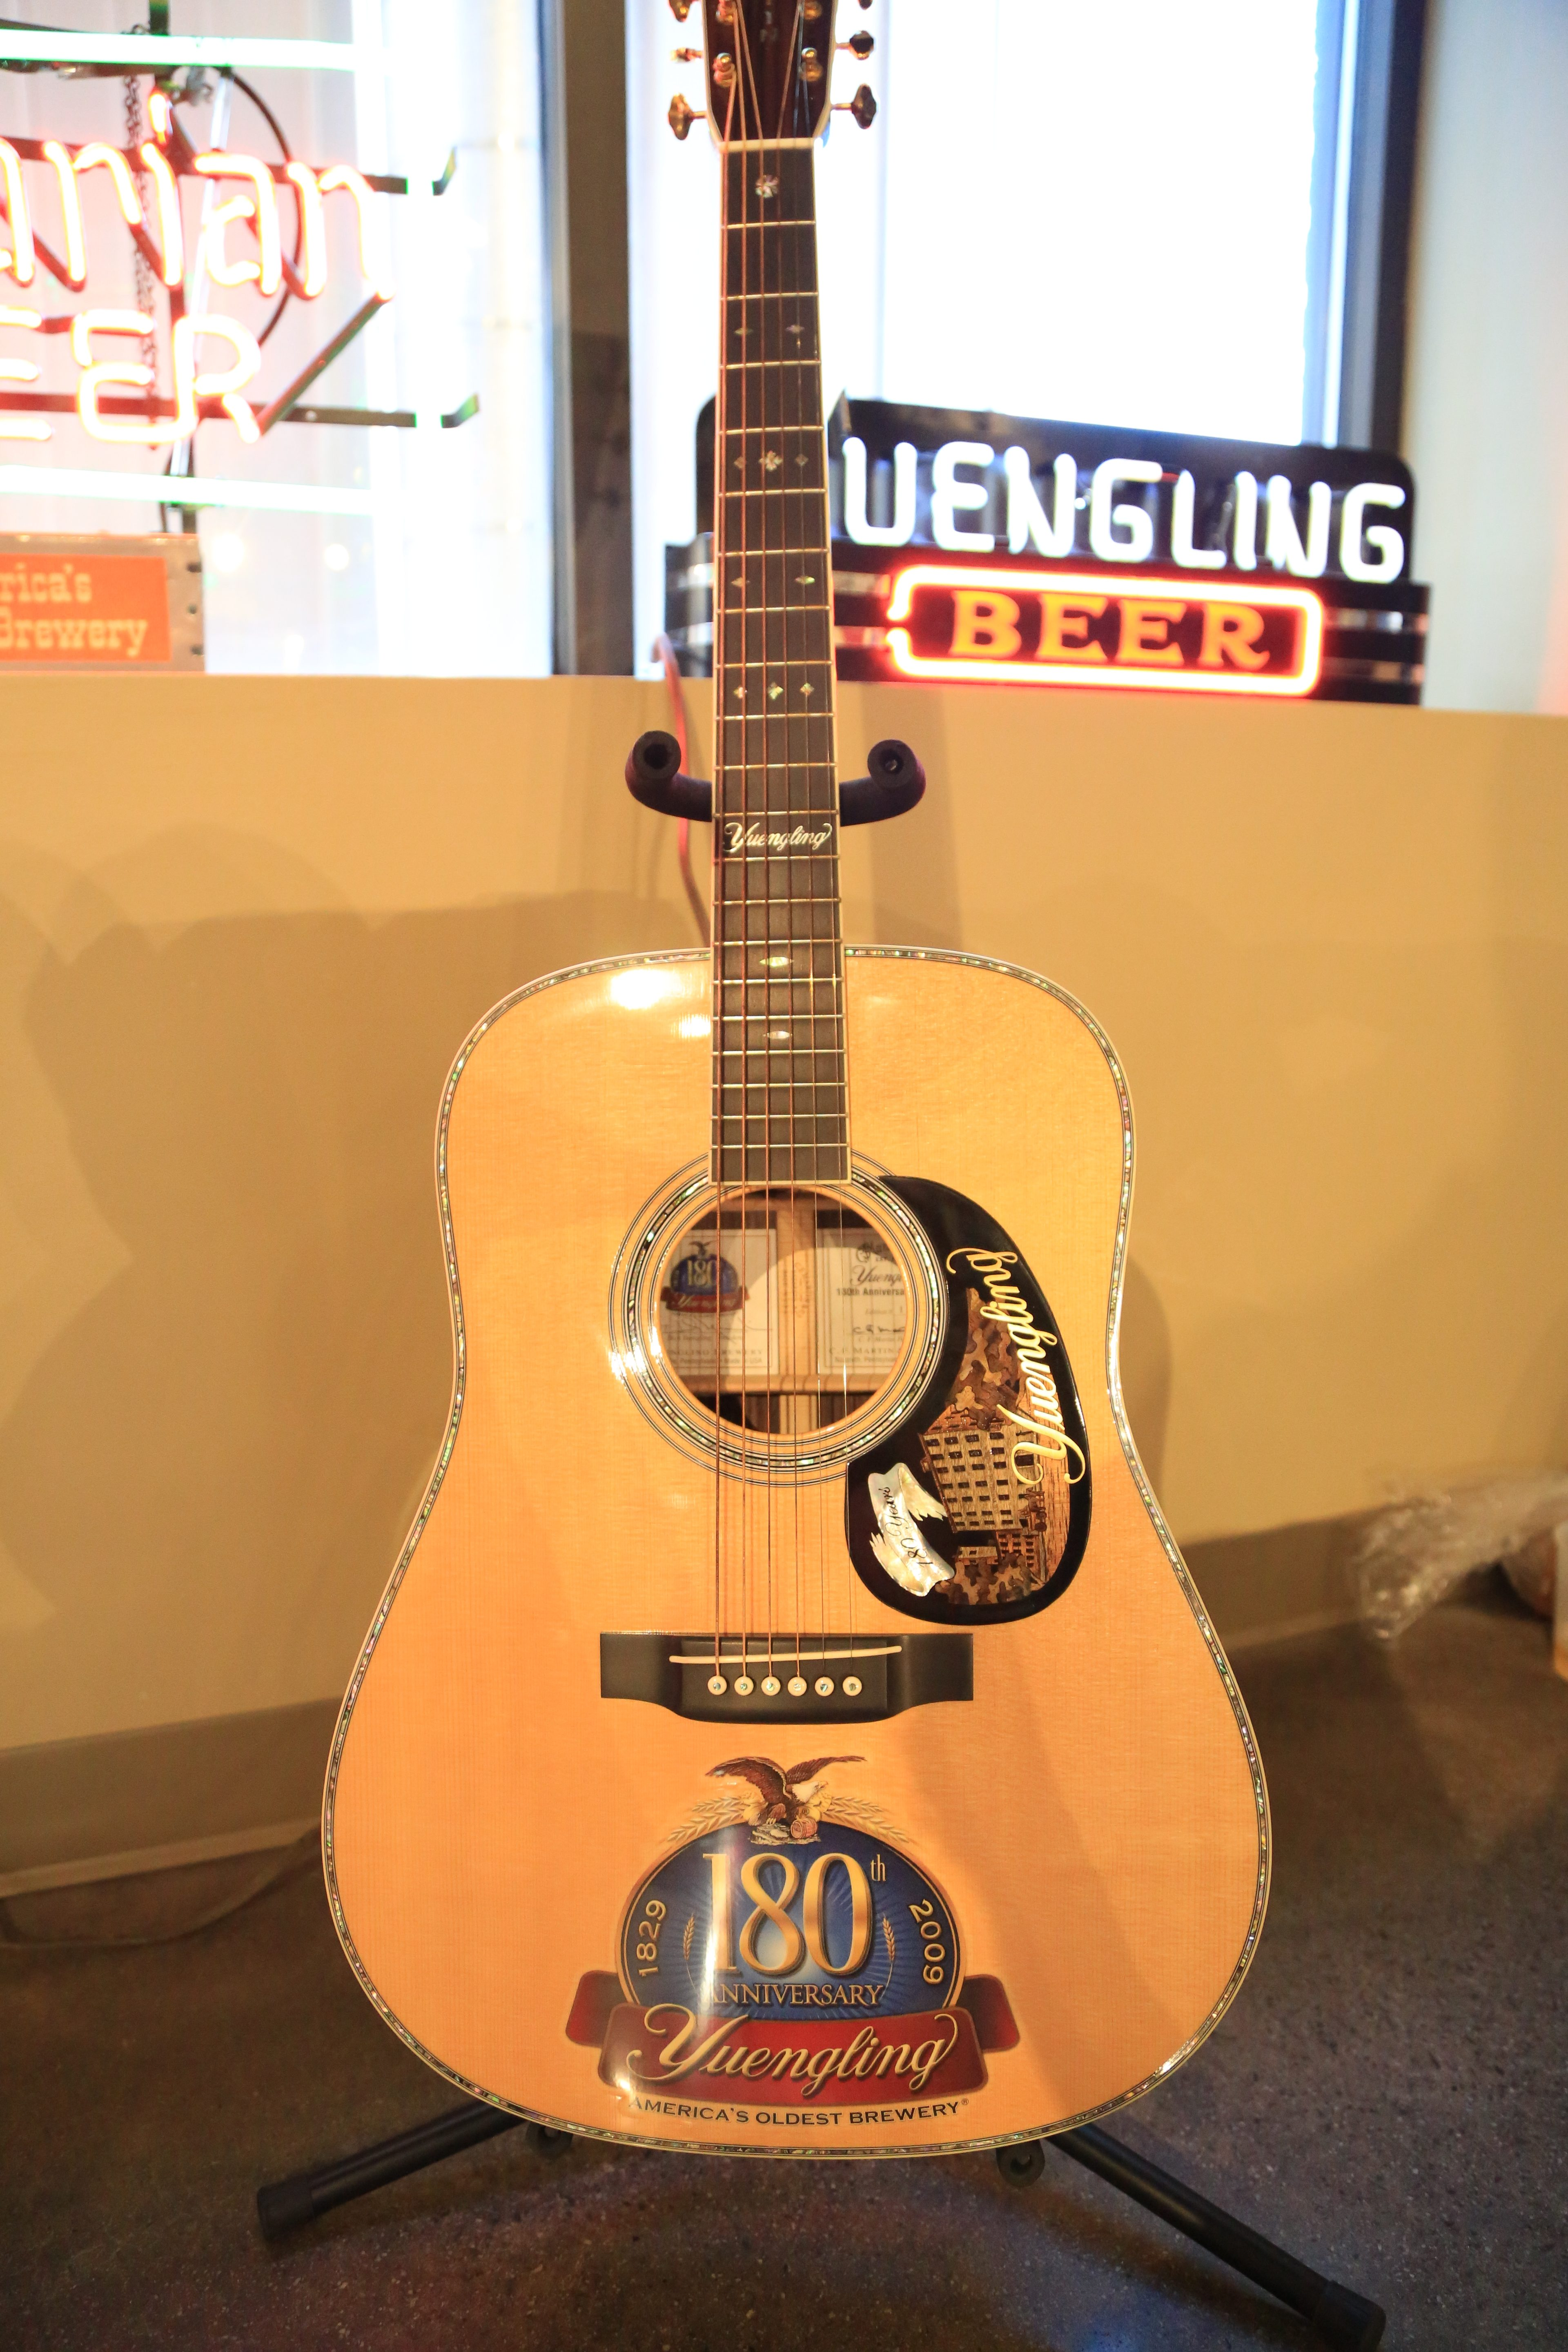 Partnering with Martin Guitar - Yuengling